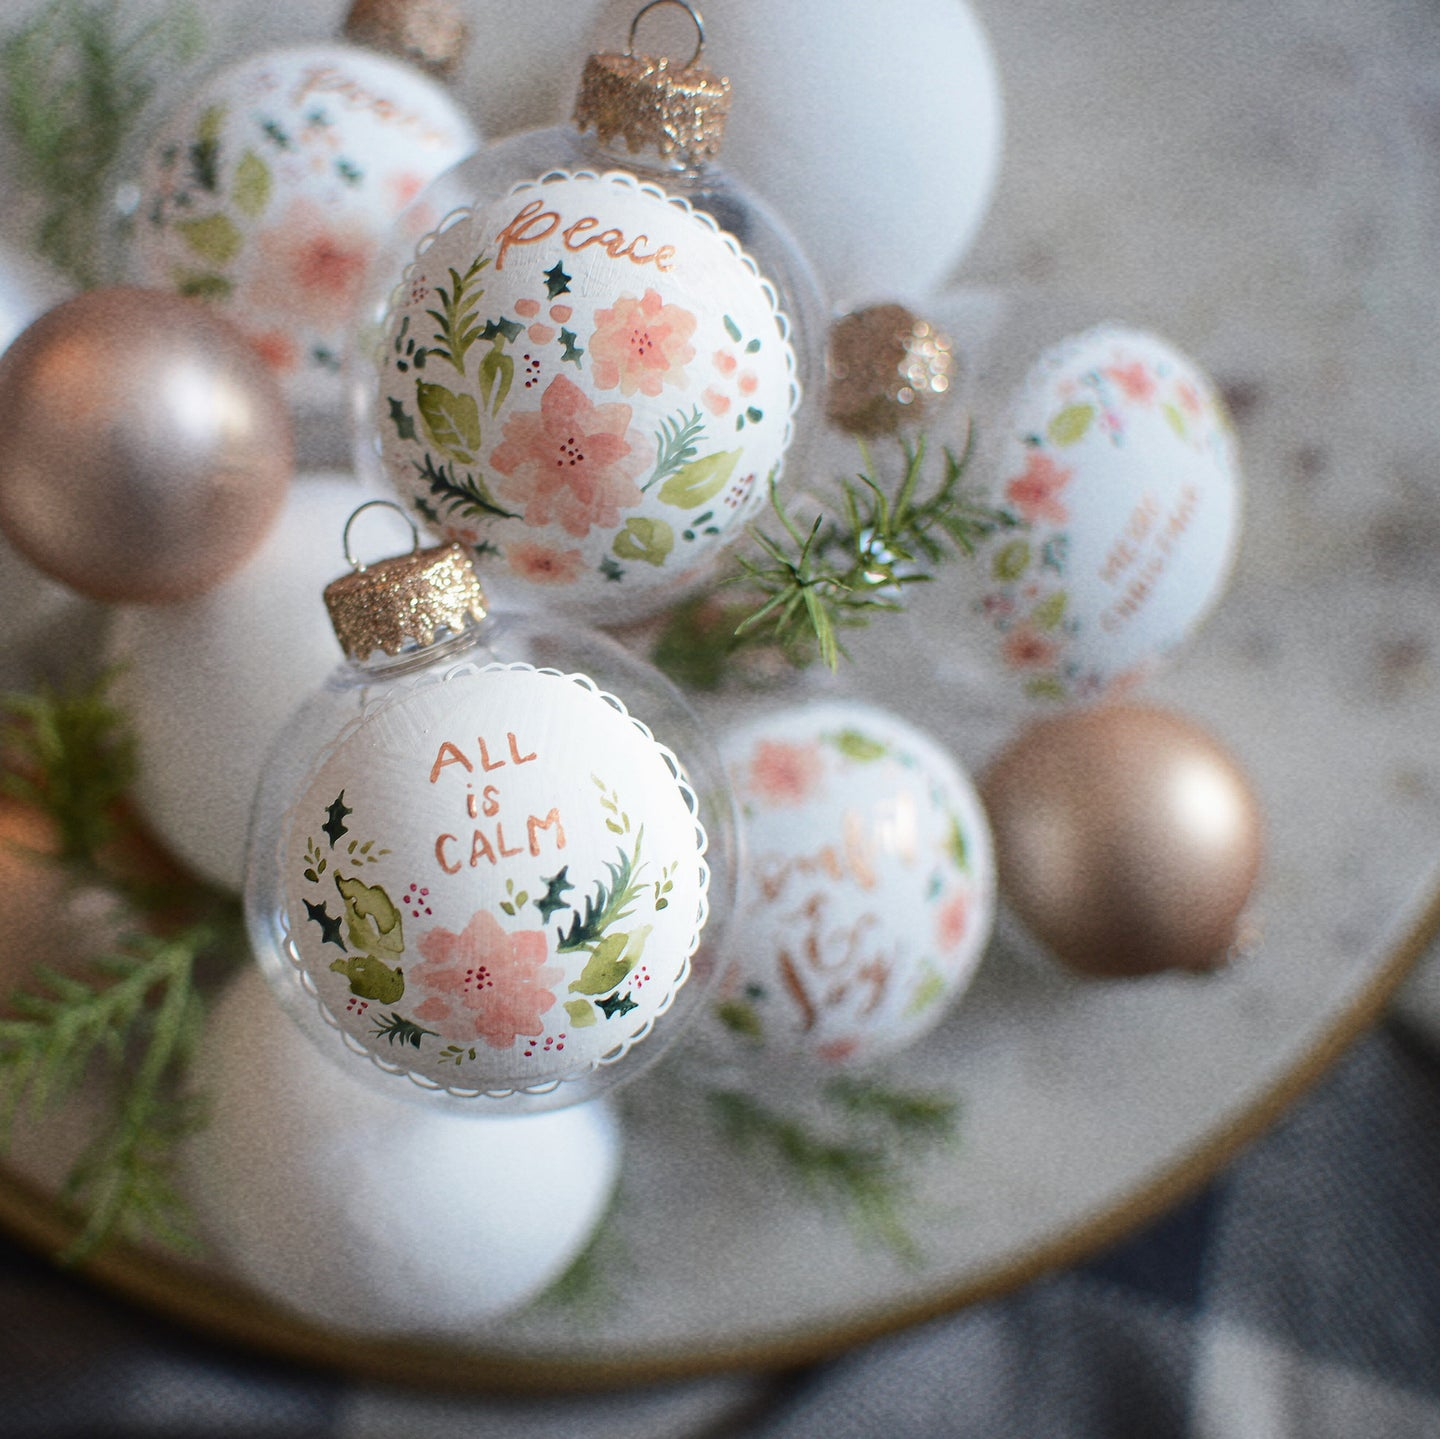 Christmas Ornament | All is calm